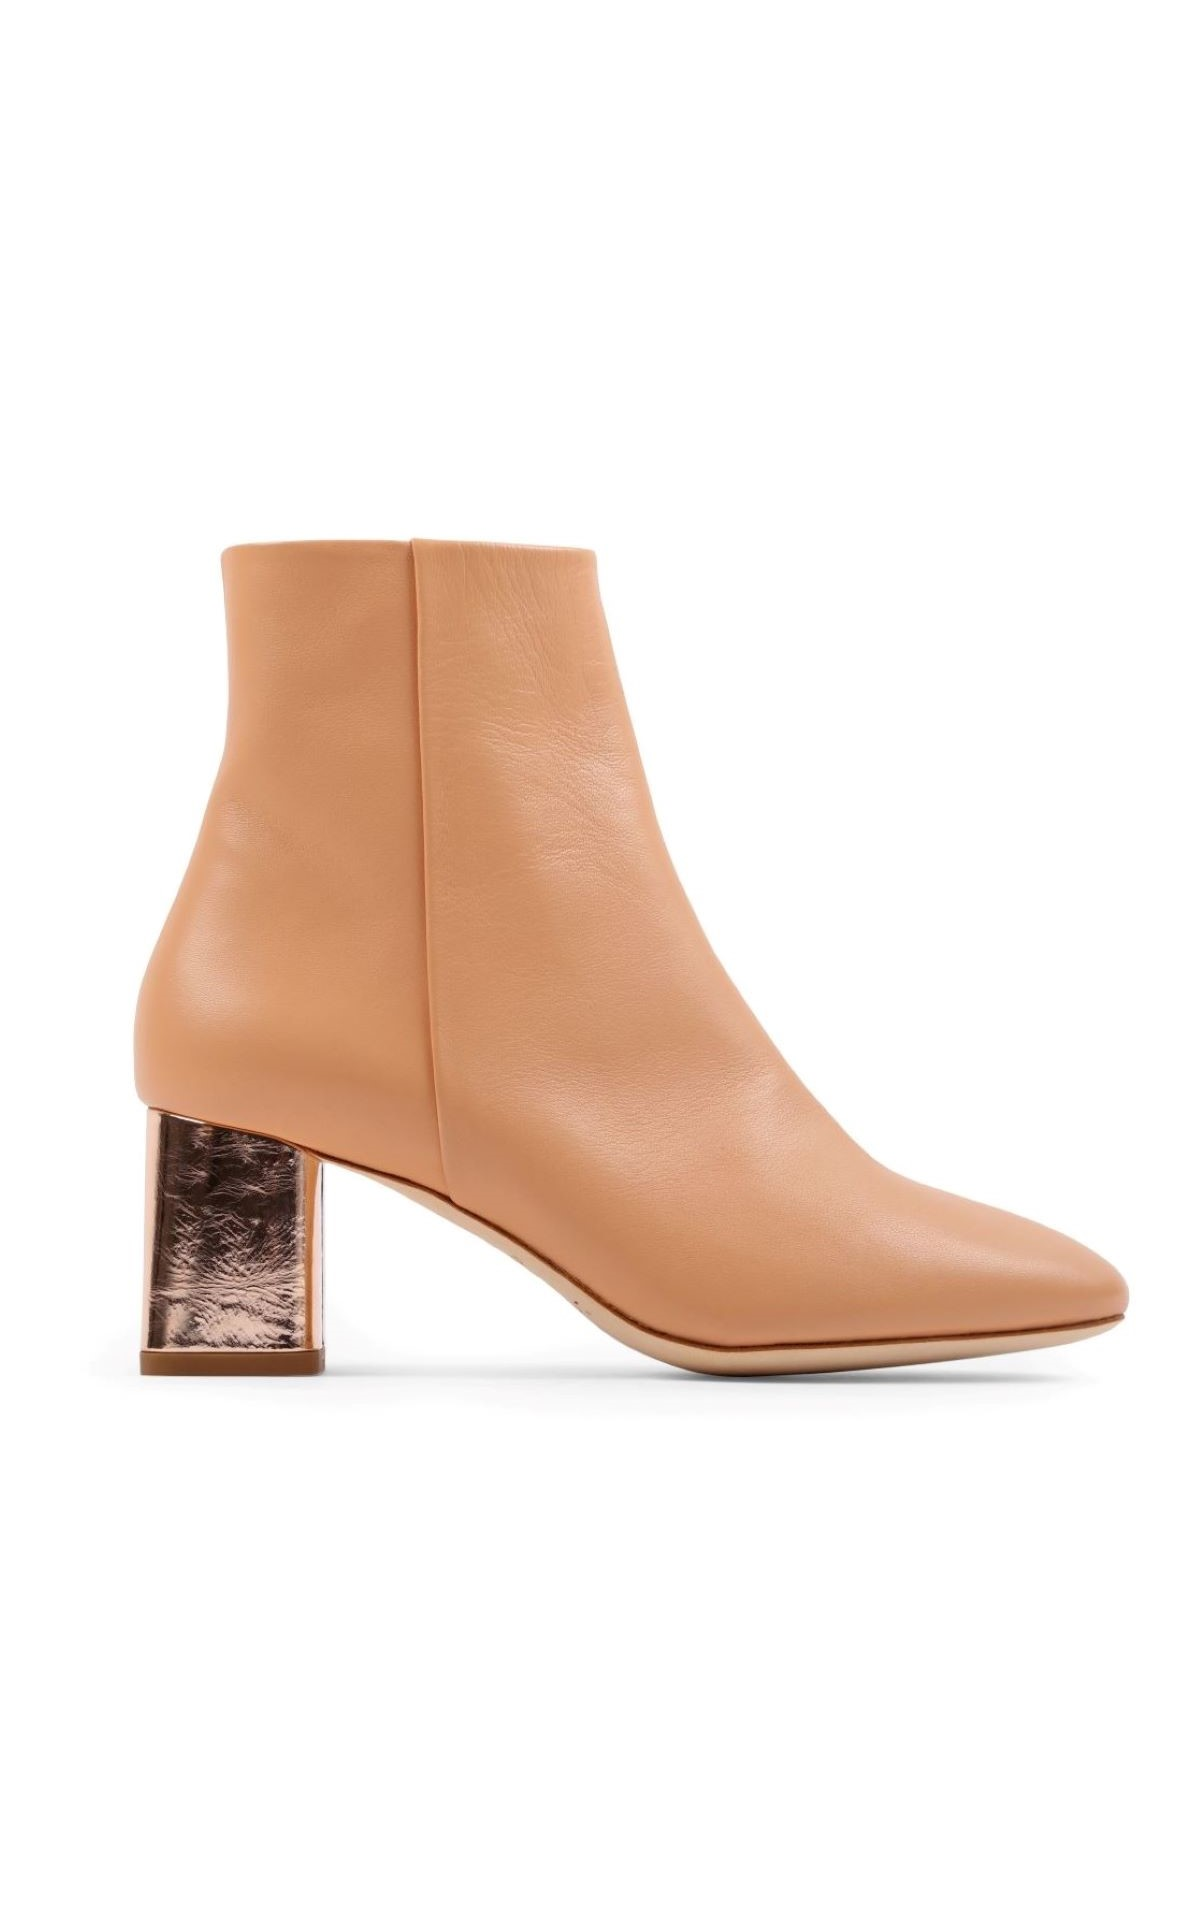 La Vallée Village Repetto Melo boot